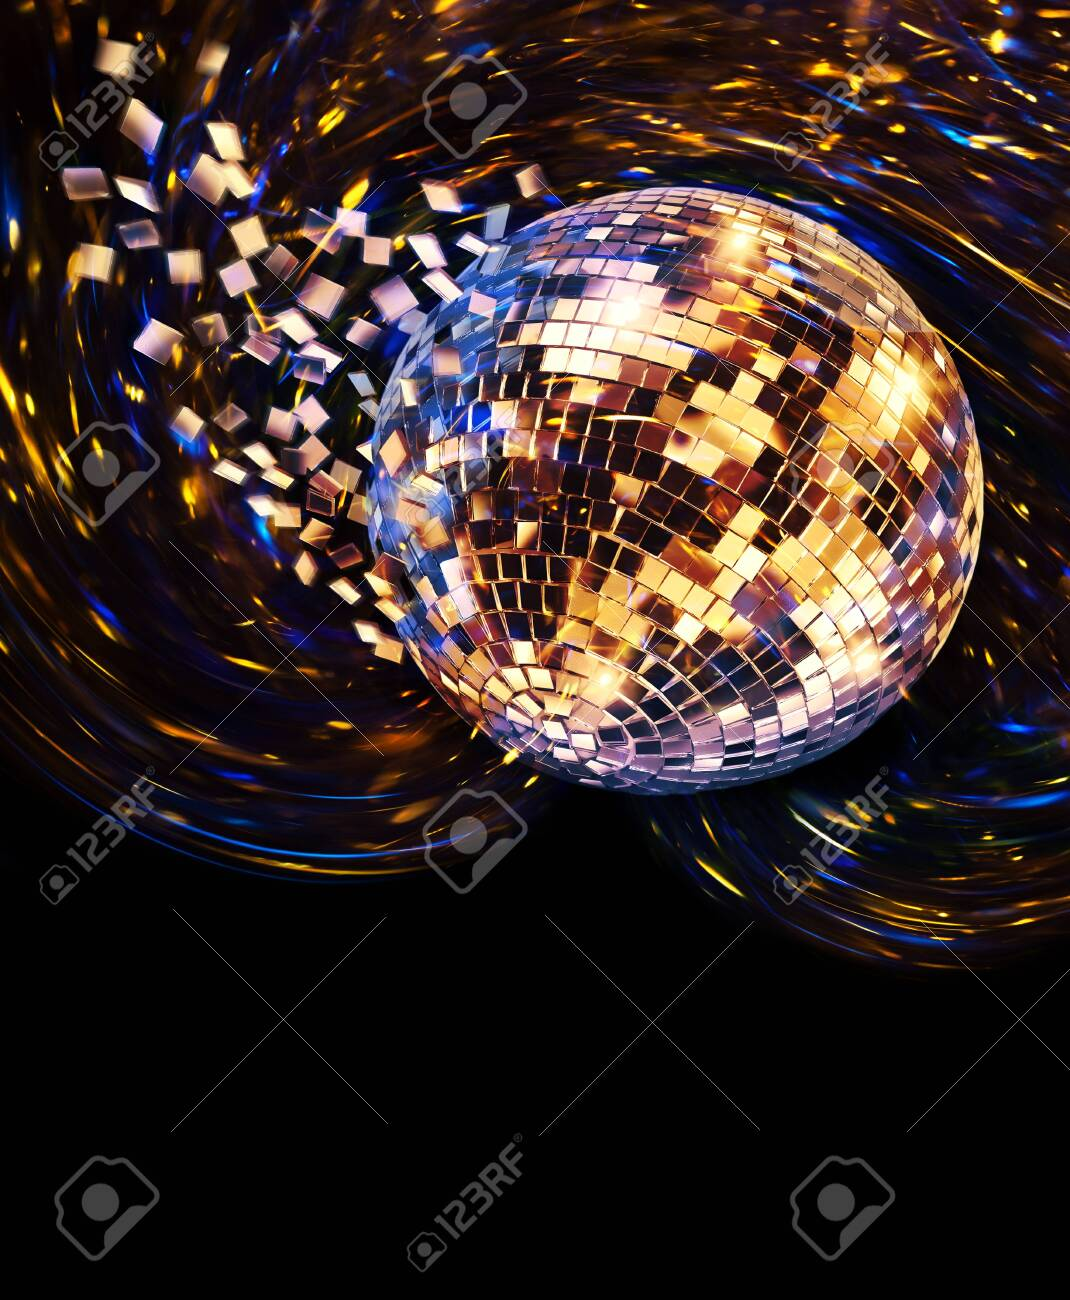 Vintage Disco Mirror Ball Spinning And Breaking Into Blue And Stock Photo Picture And Royalty Free Image Image 142652245